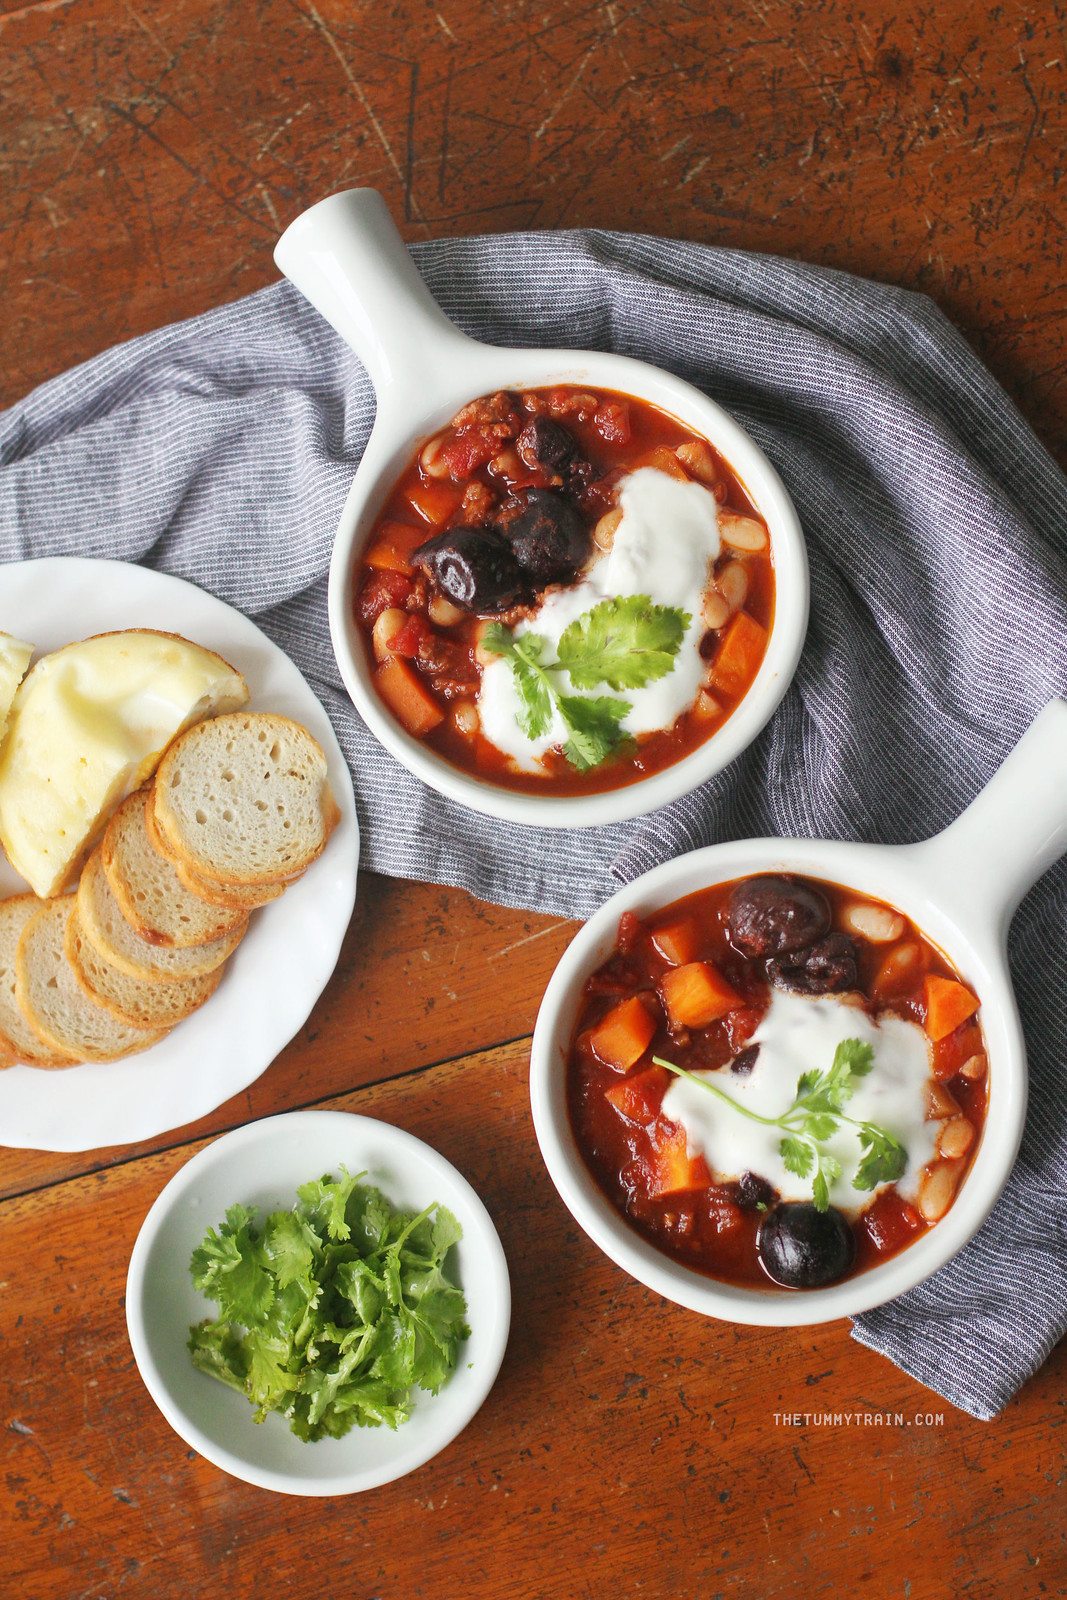 35717542996 65401ca043 h - This Cherry Chipotle Chili Recipe was a fitting first try